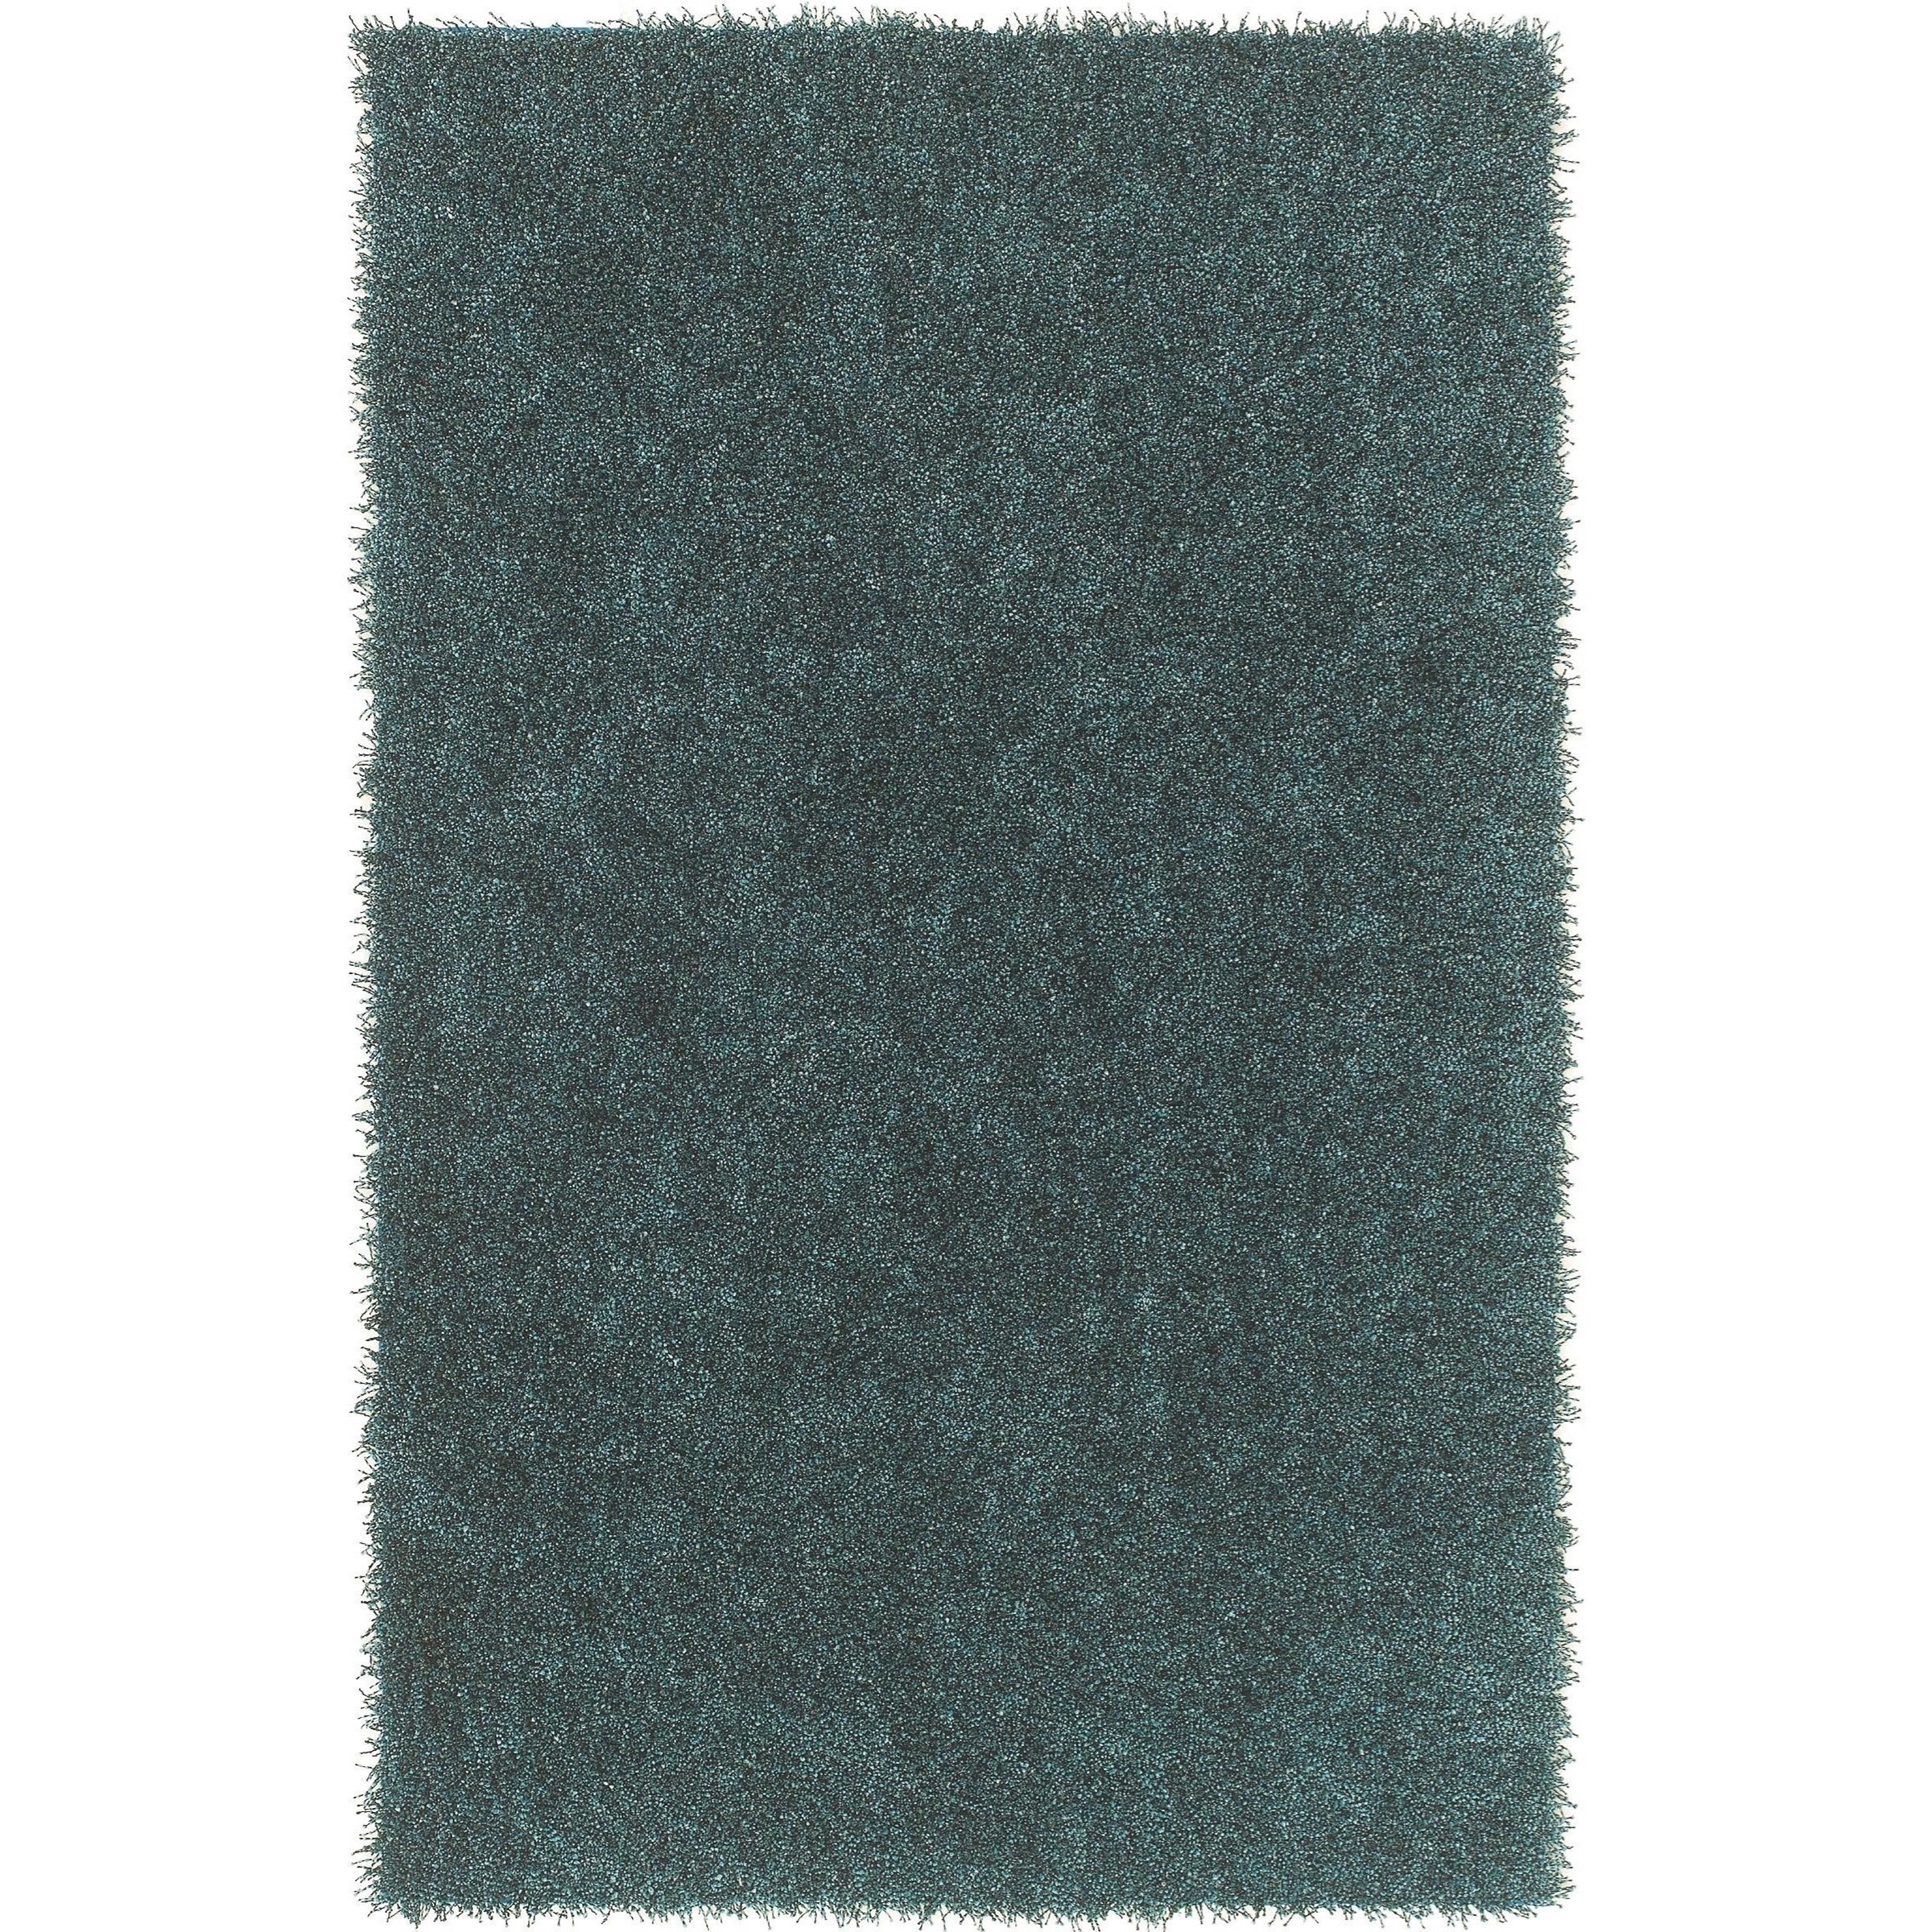 Dalyn Belize Teal 9'X13' Rug - Item Number: BZ100TE9X13